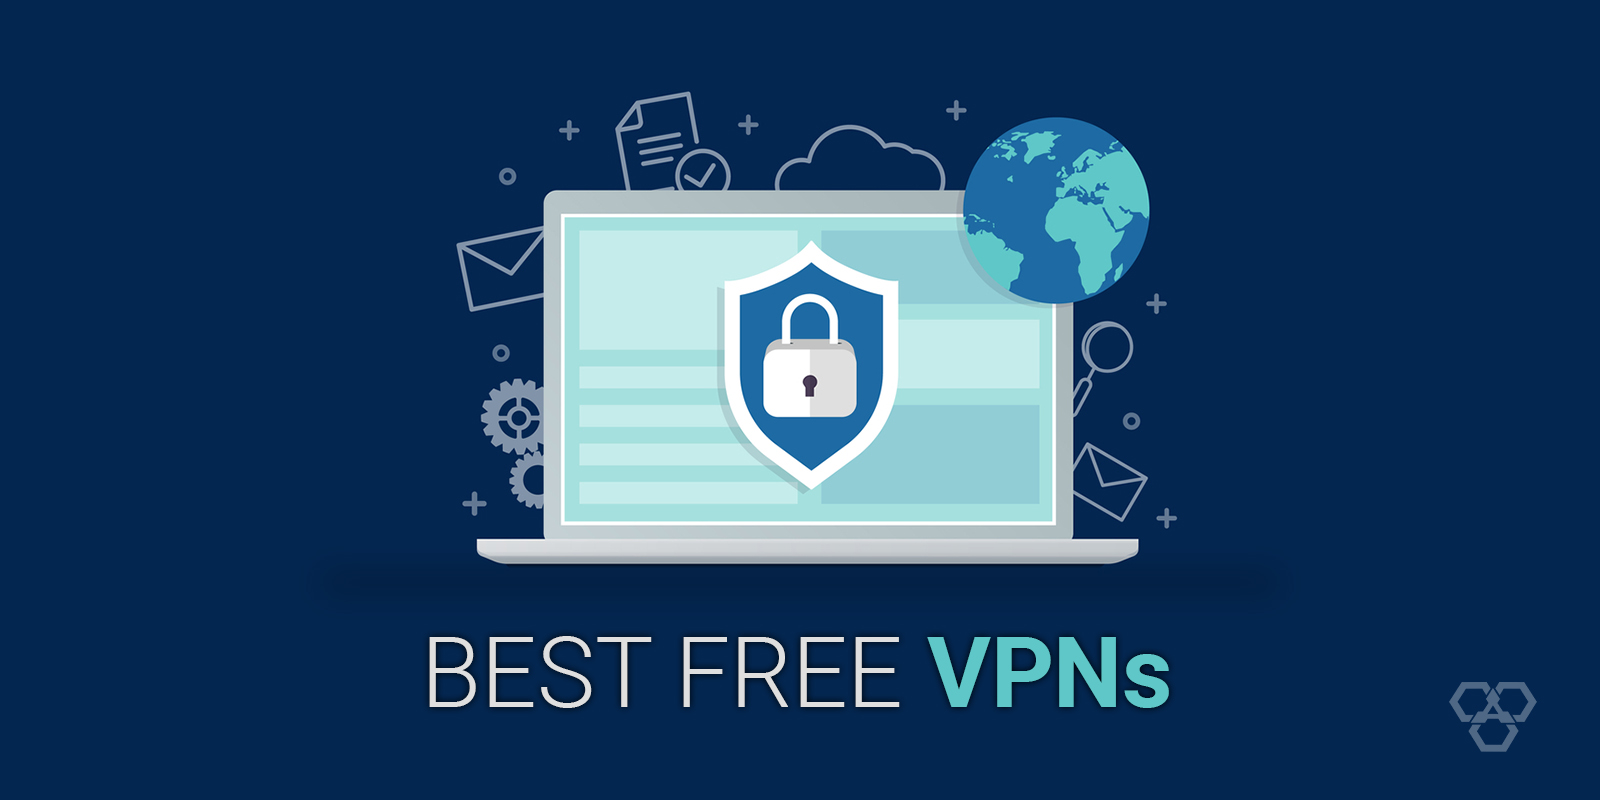 Best Free VPNs for 2021